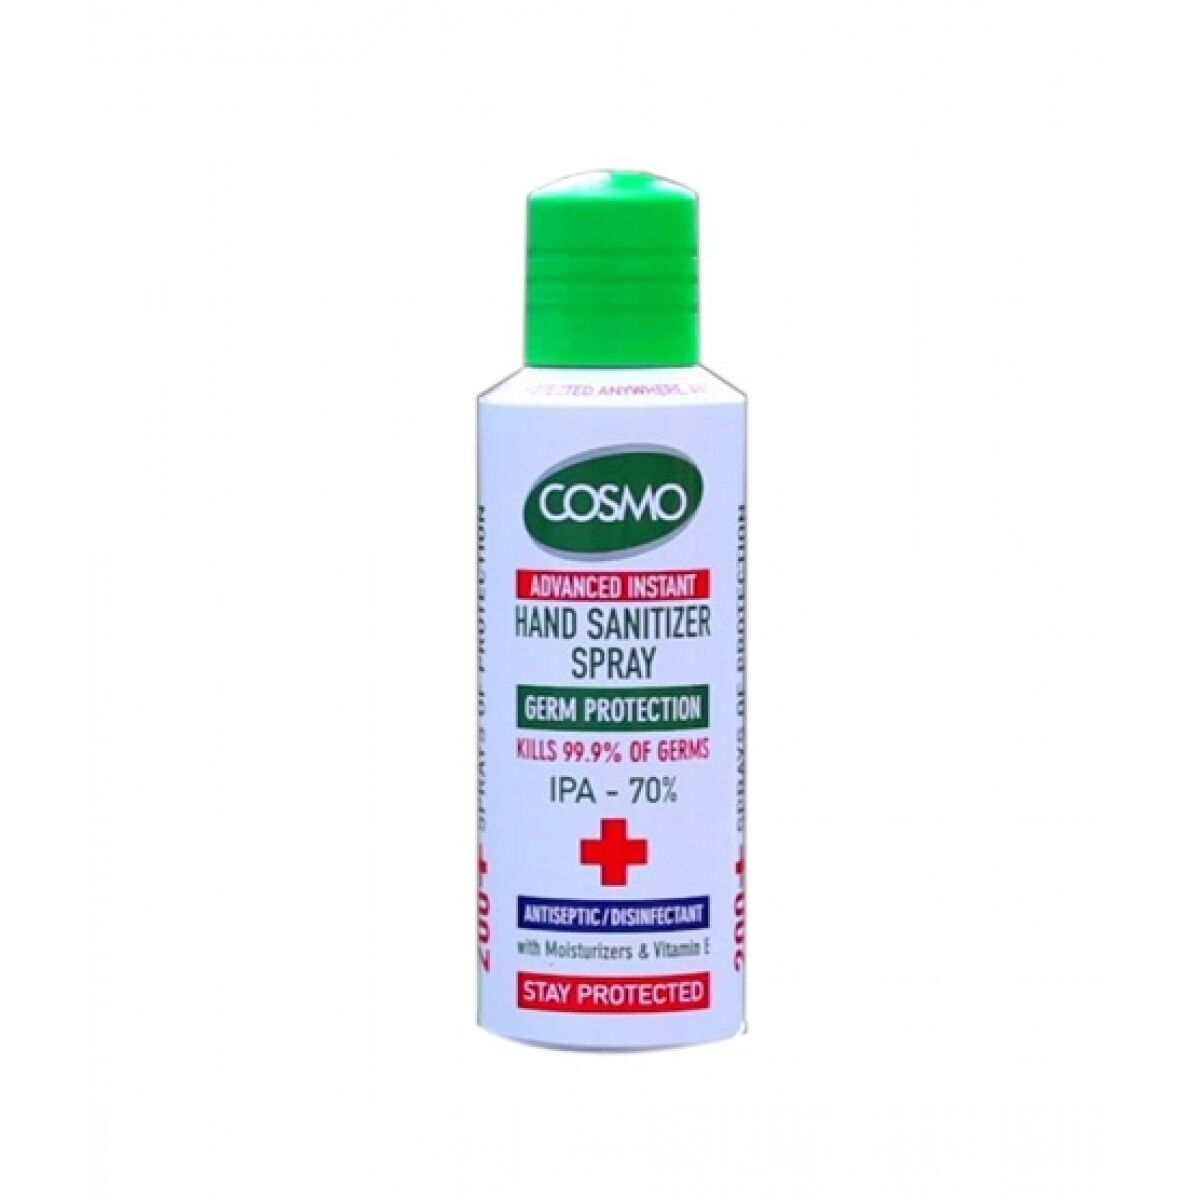 Cosmo Advanced Instant Disinfectant Hand Sanitizer Spray 150ml (70% Alcohol ISO Certified)